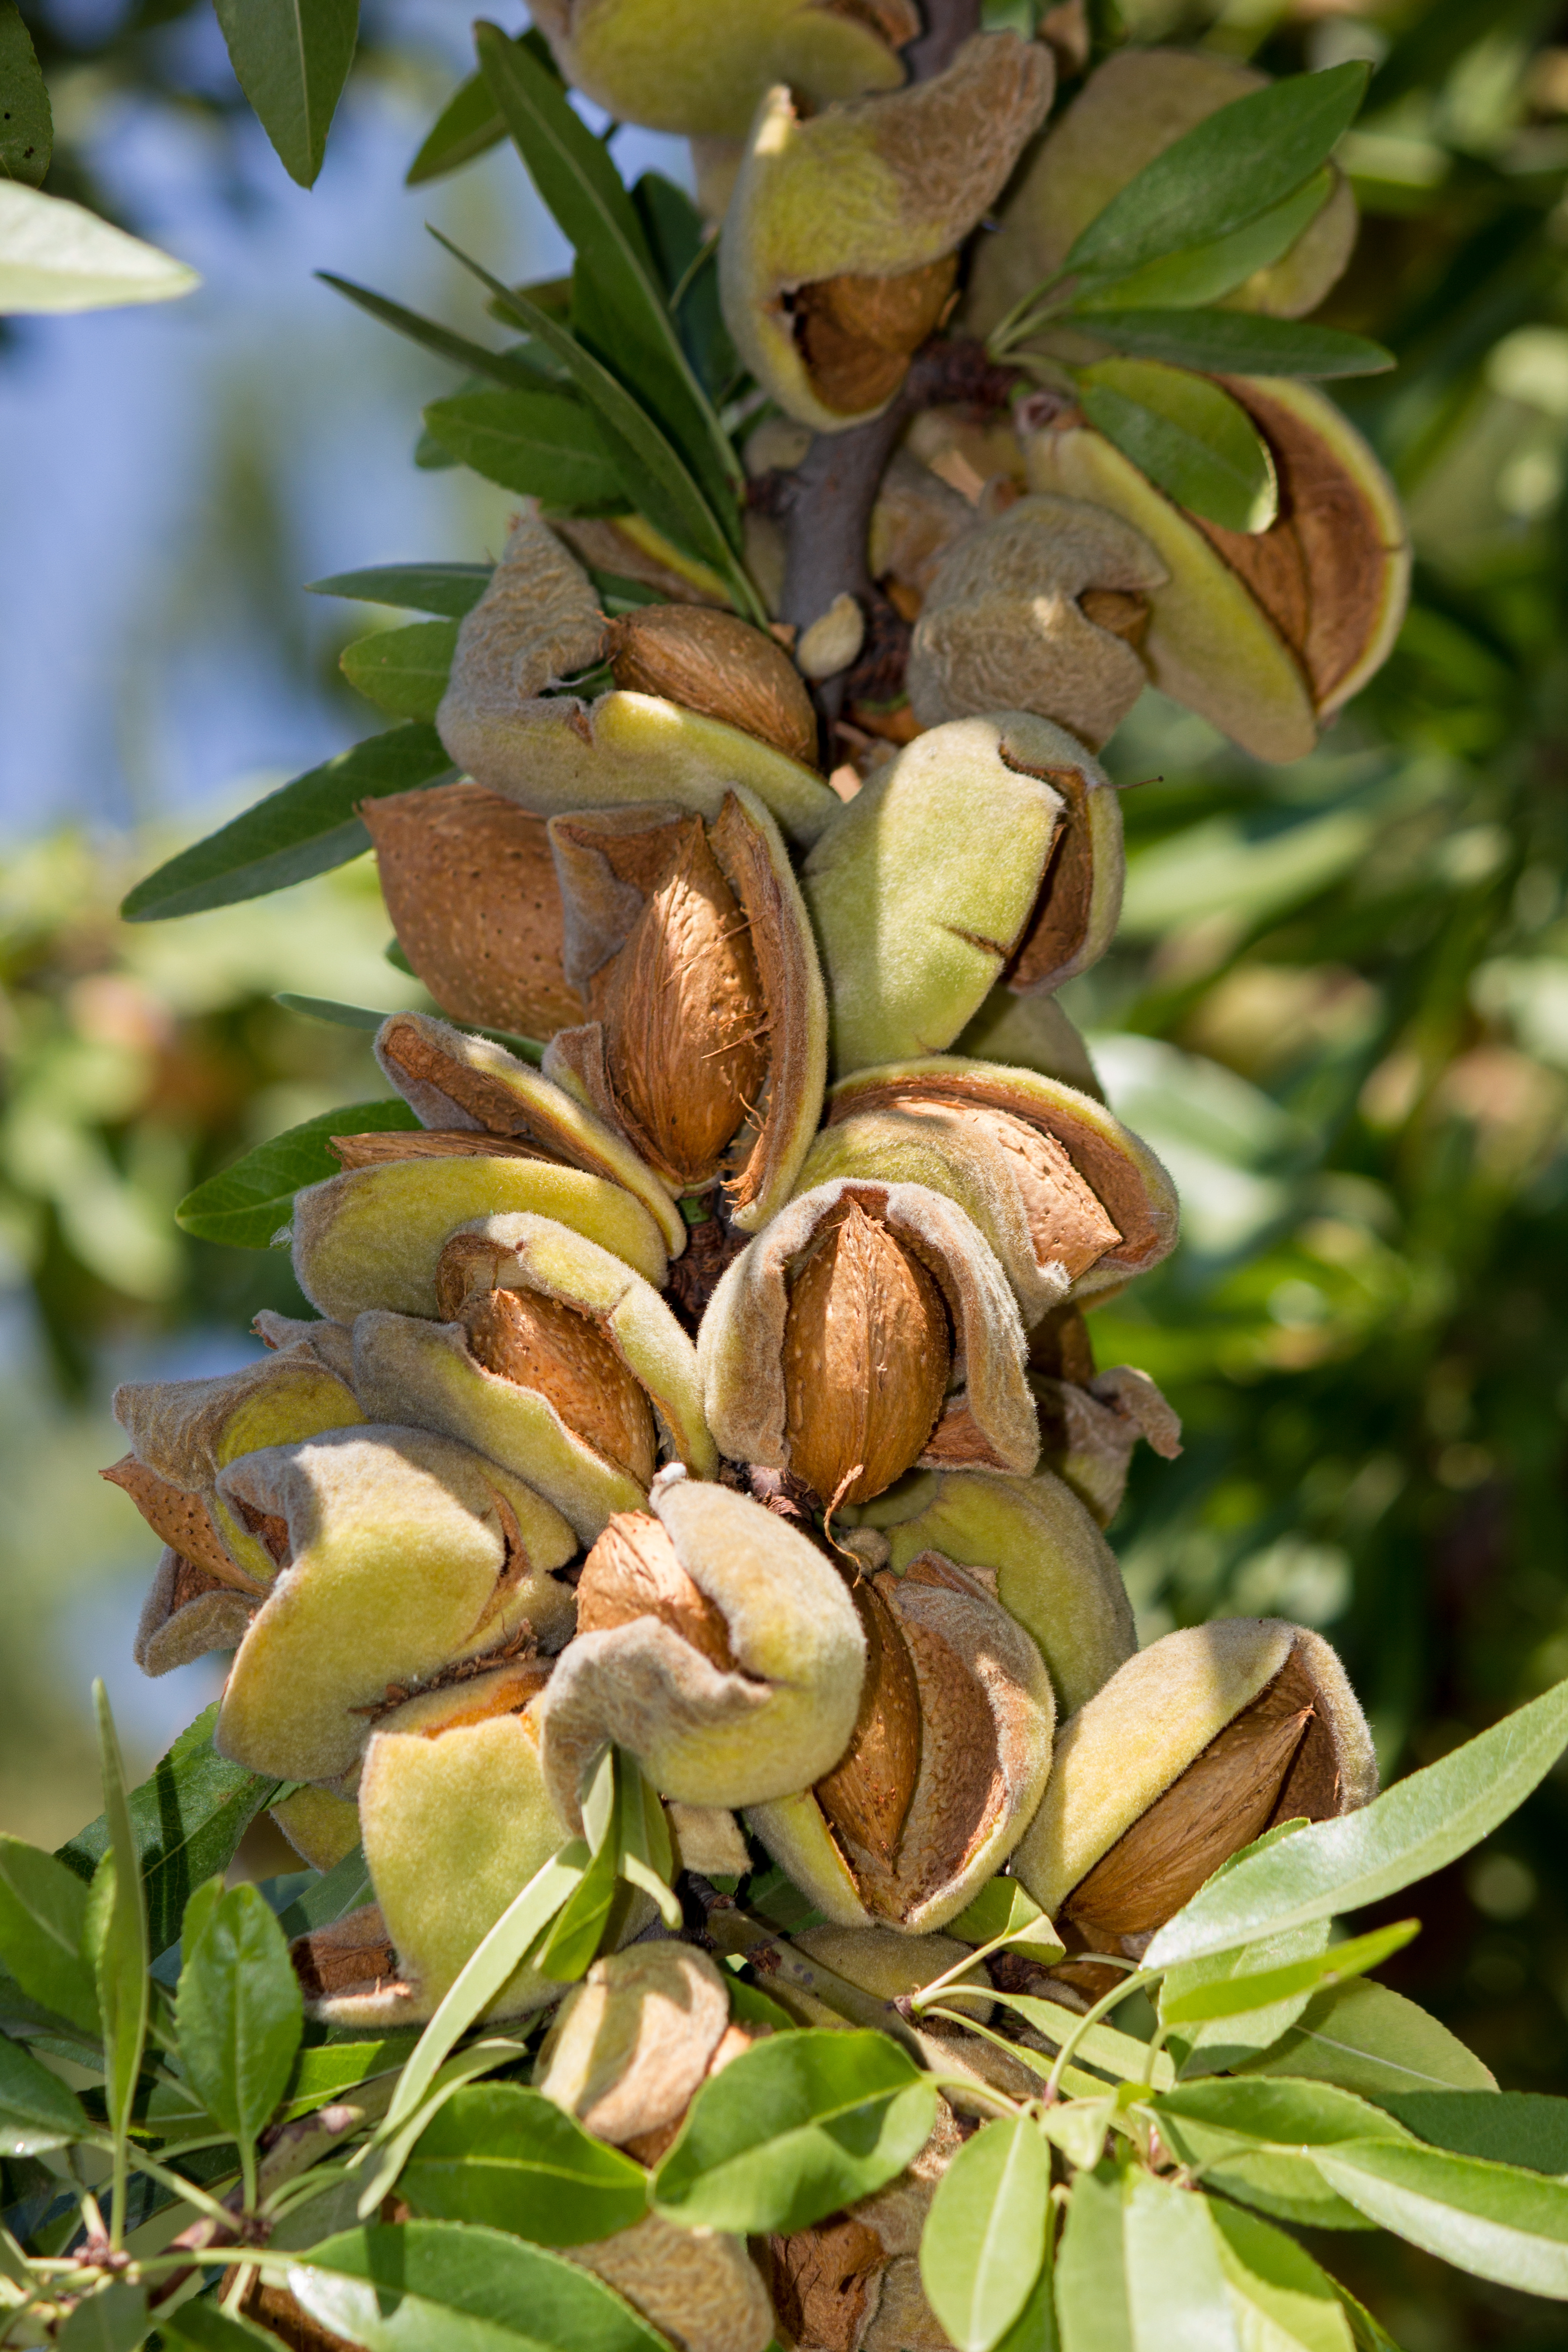 Hull Split. The Almond Harvest is Coming